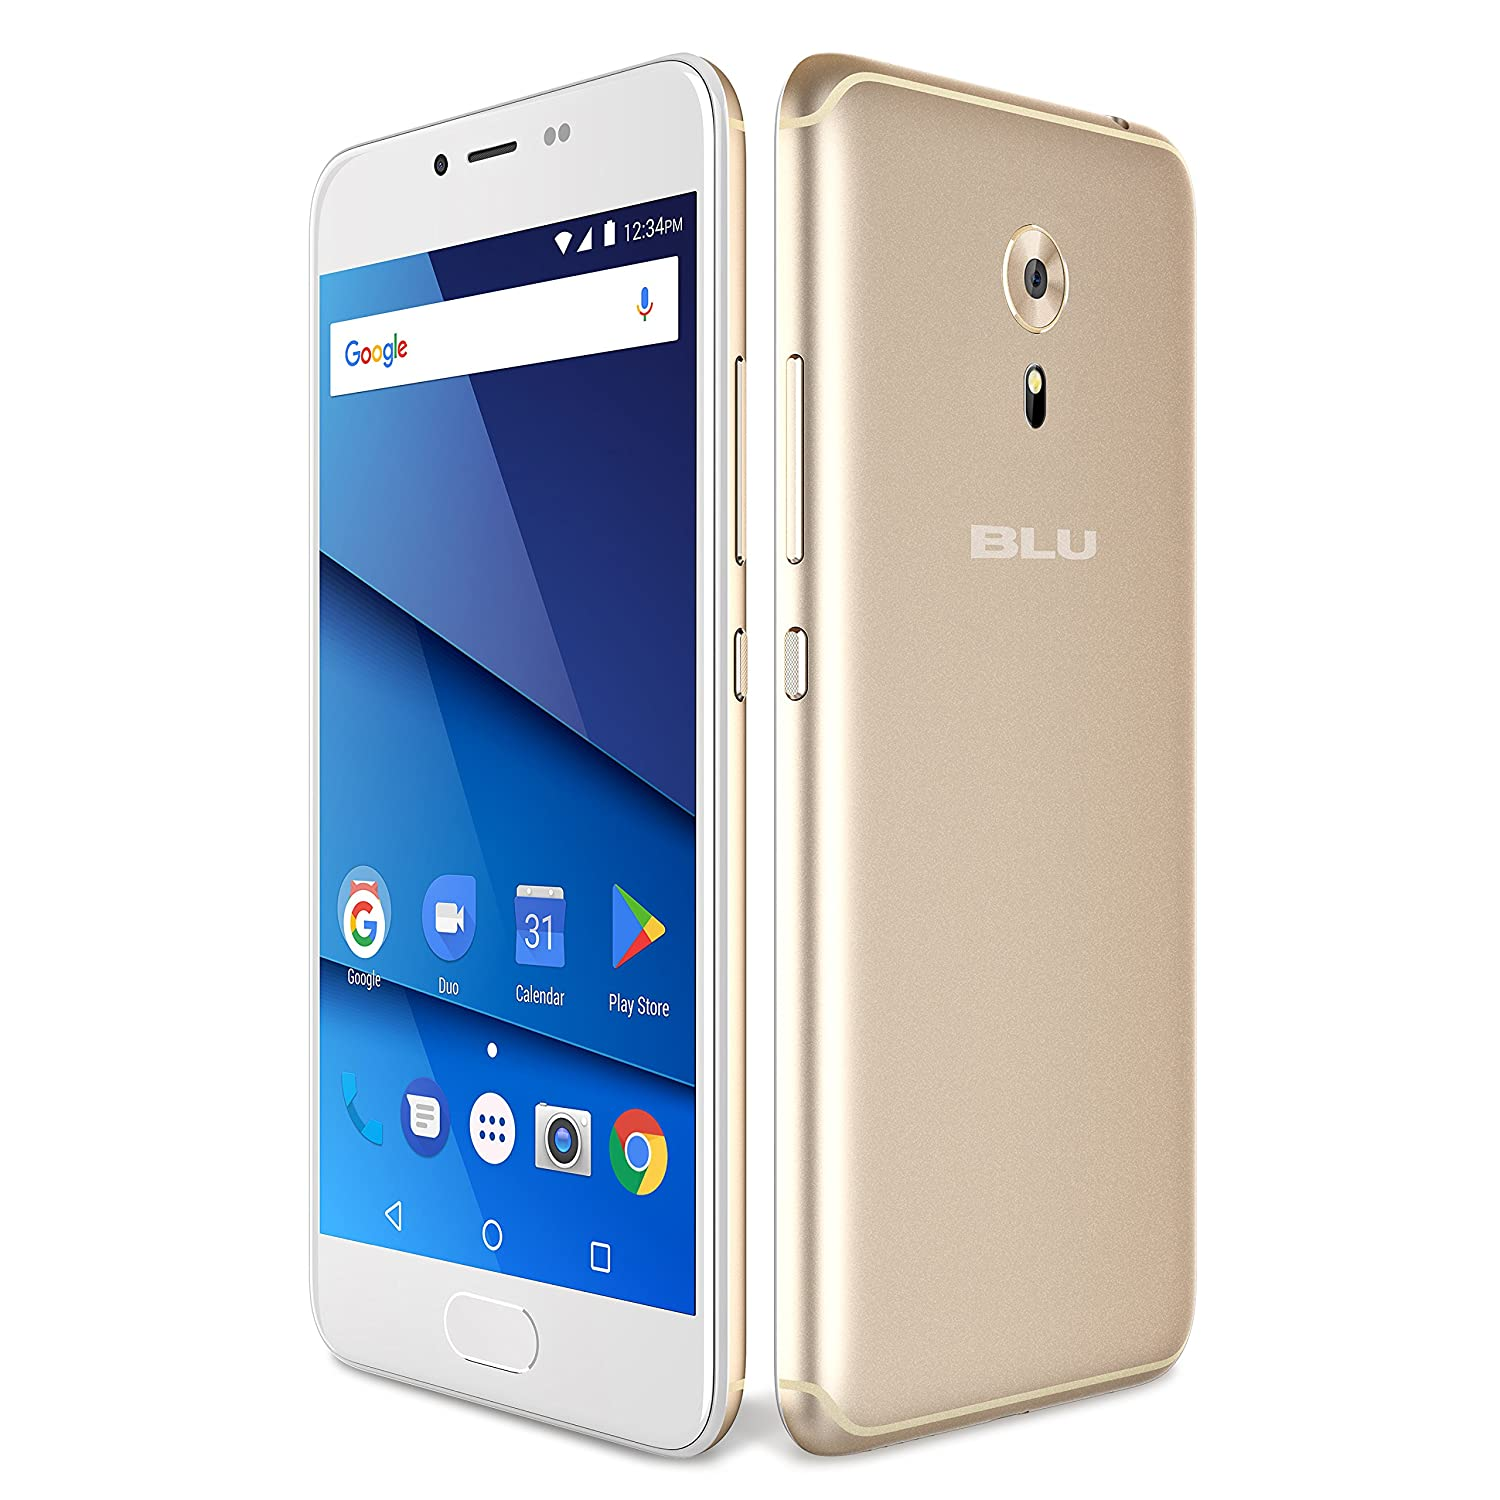 BLU R1 HD 2018 Factory Unlocked Phone - 5.2Inch Screen - 16GB - Gold (U.S. Warranty) R020P